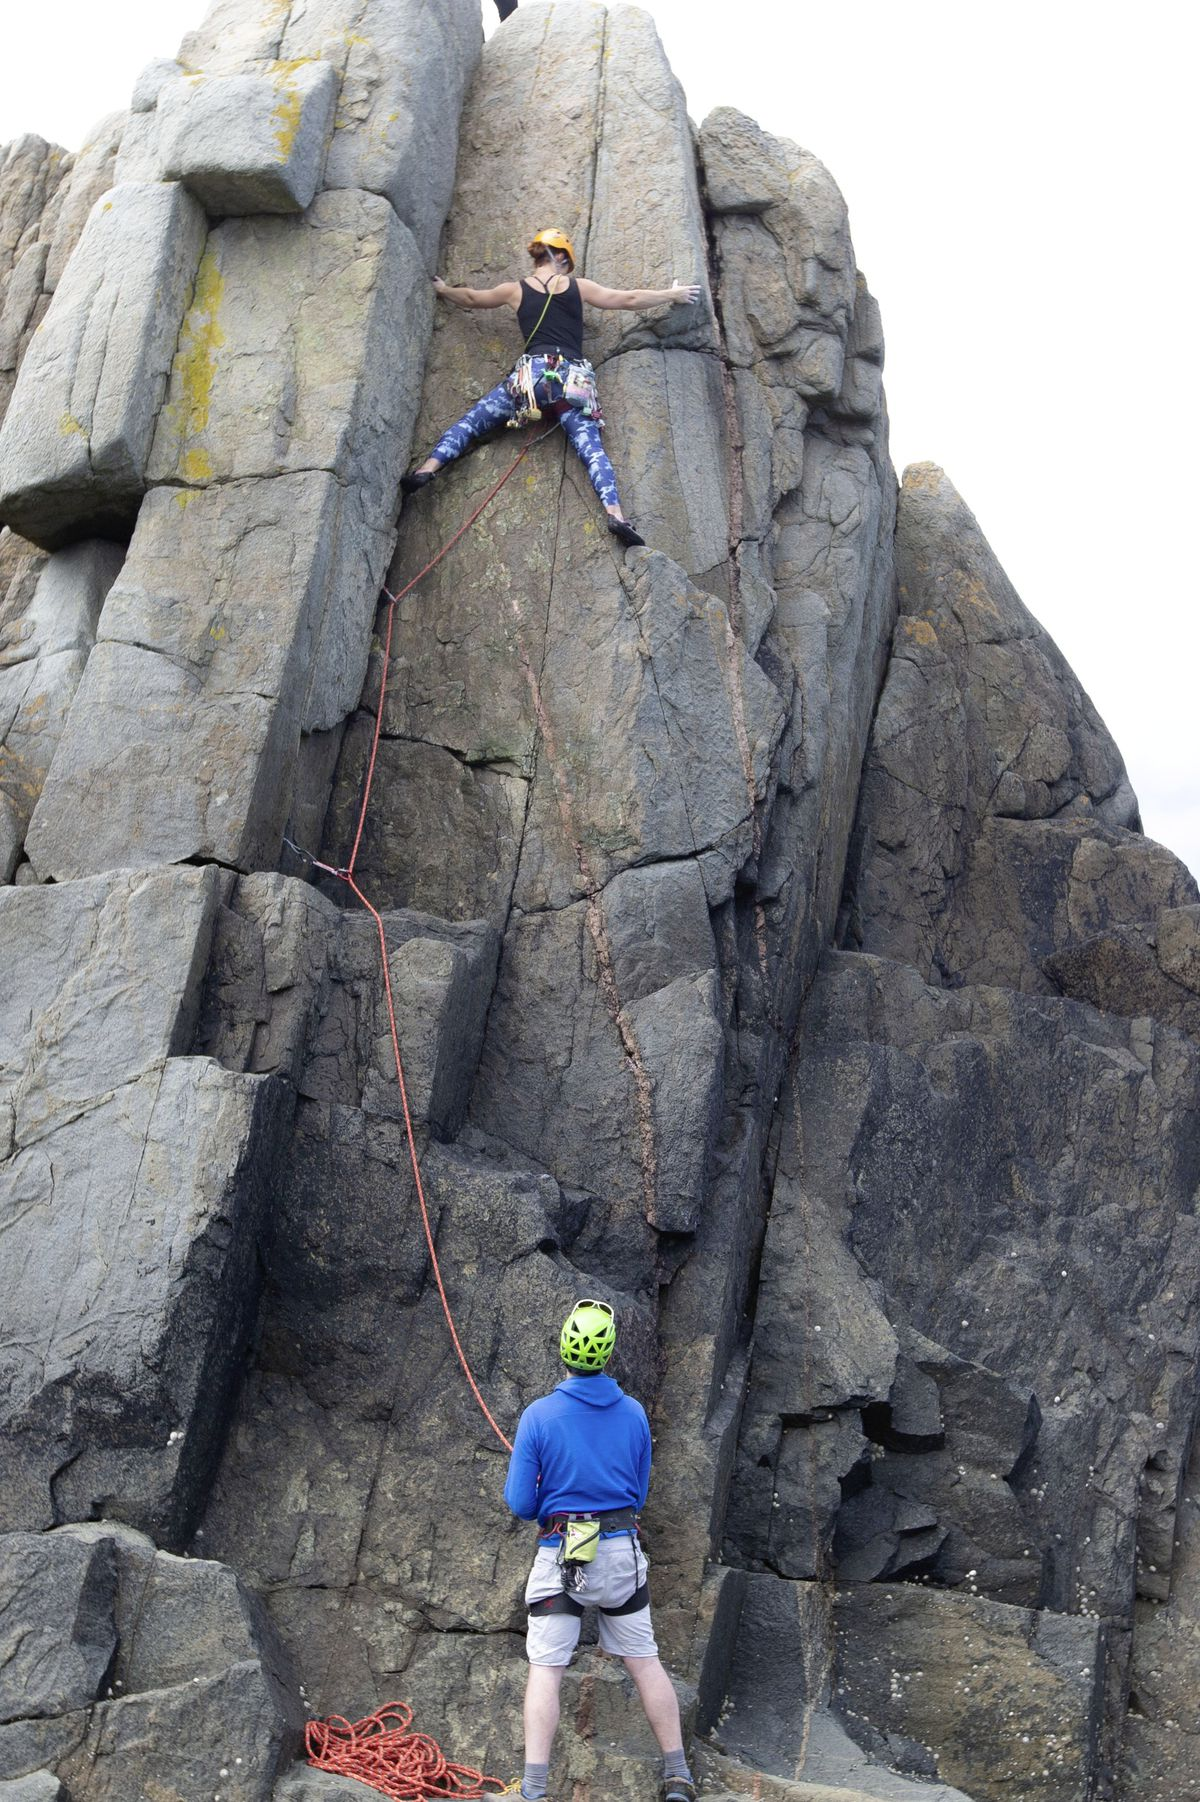 Chris Harvey watches as Nicky Pledger completes her first climb.  (Picture by Cassidy Jones, 29723946)